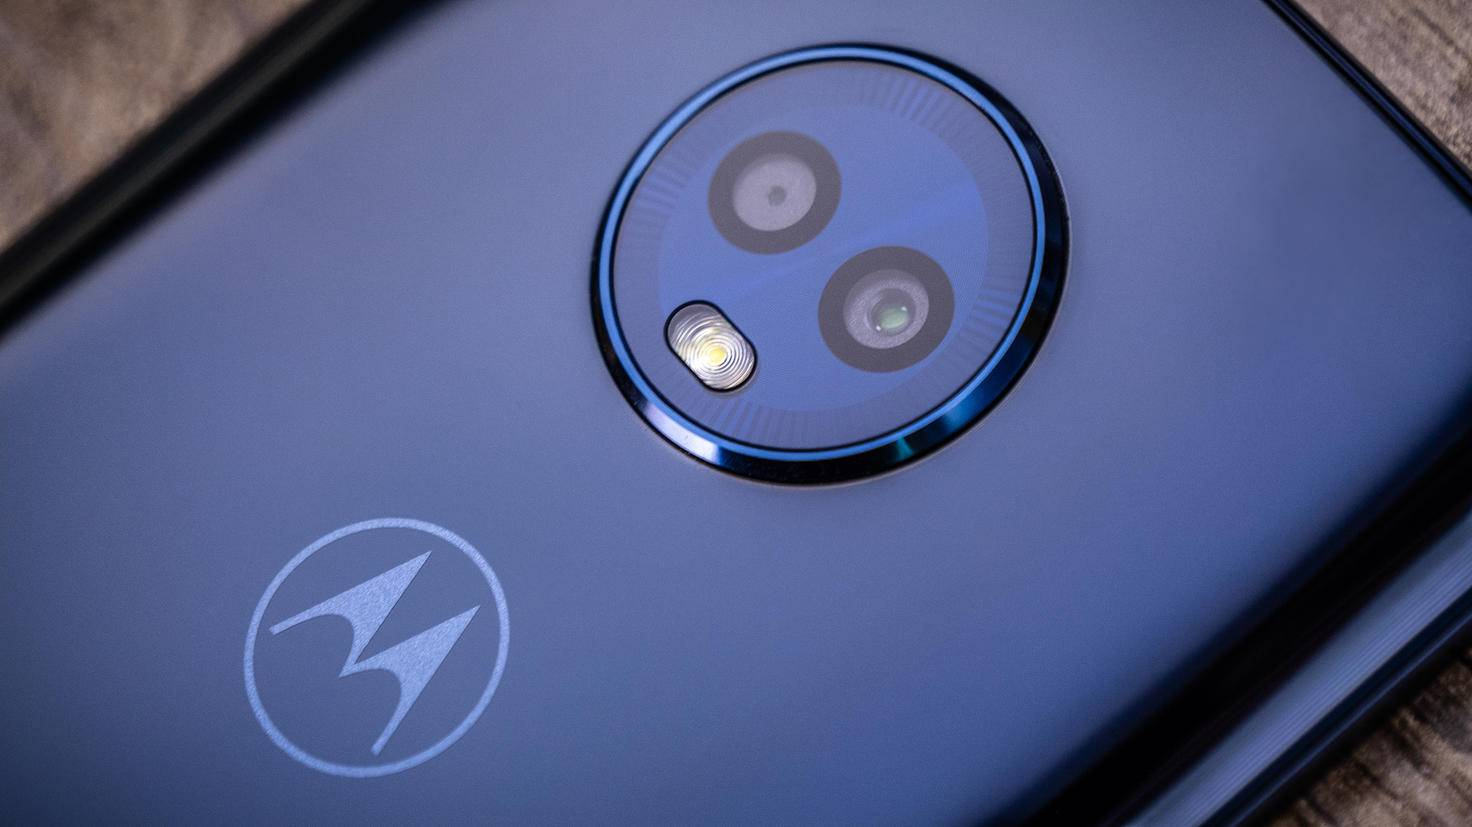 Motorola-Moto-G6-TURN-ON-5